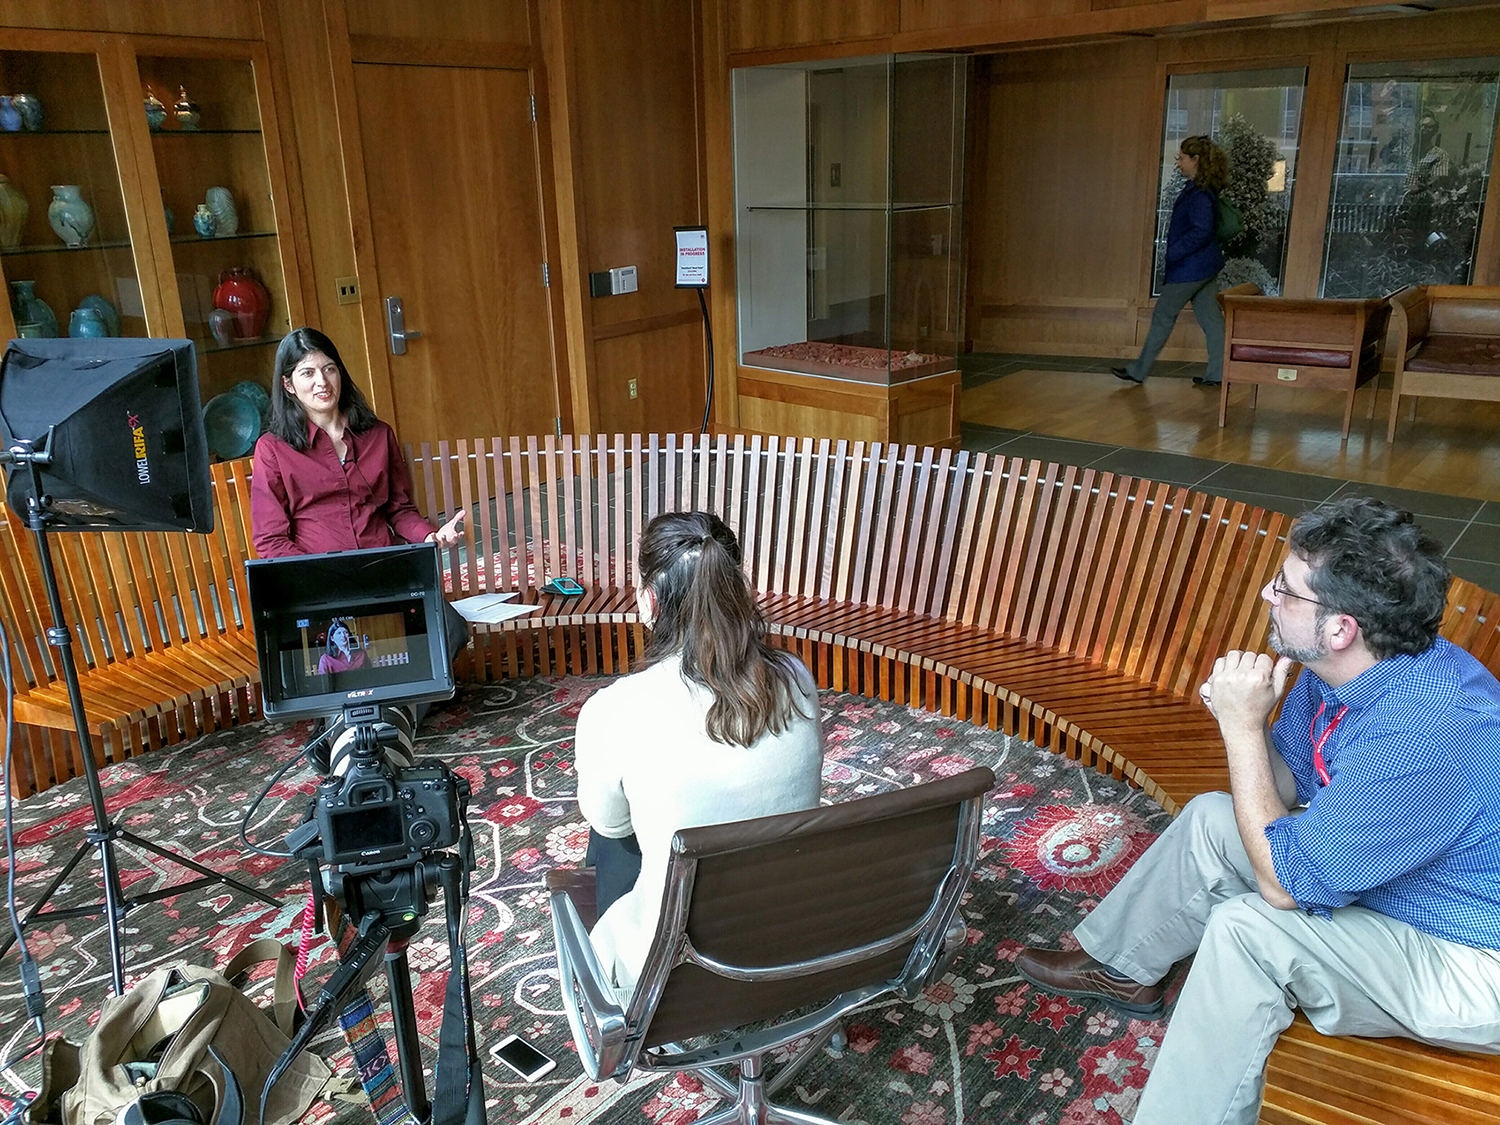 Students film a speaker sitting on a semicircular wooden bench